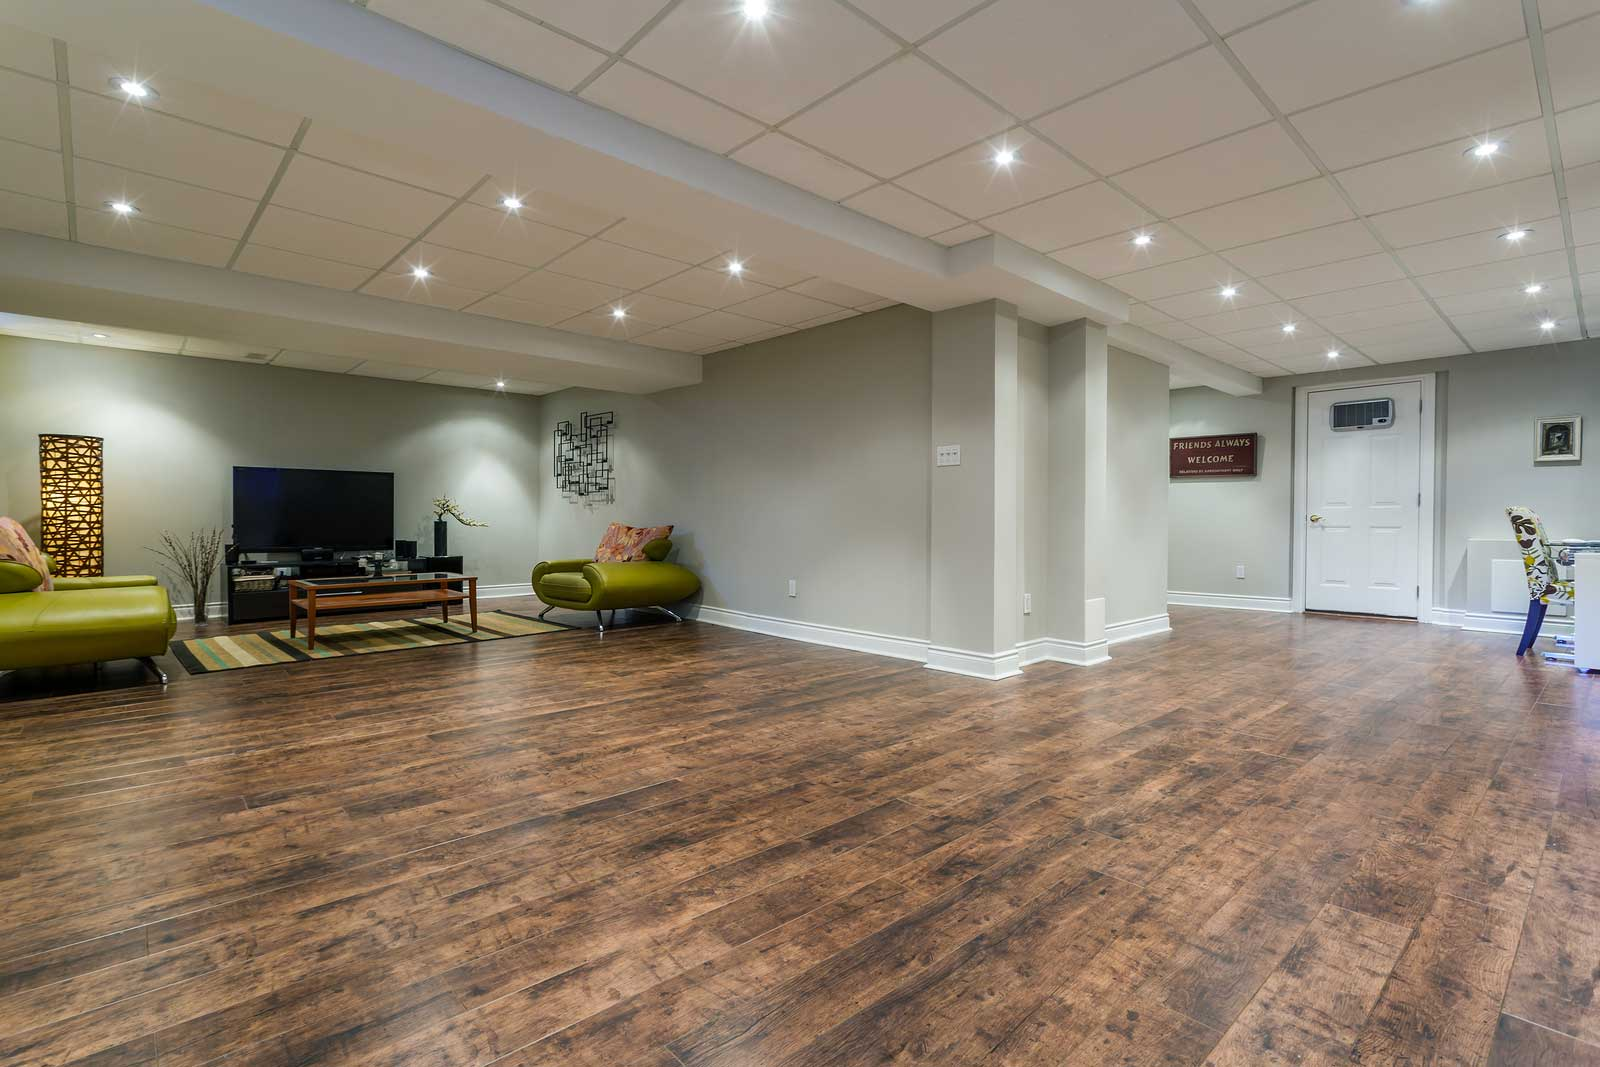 Why Is Flooring So Important?